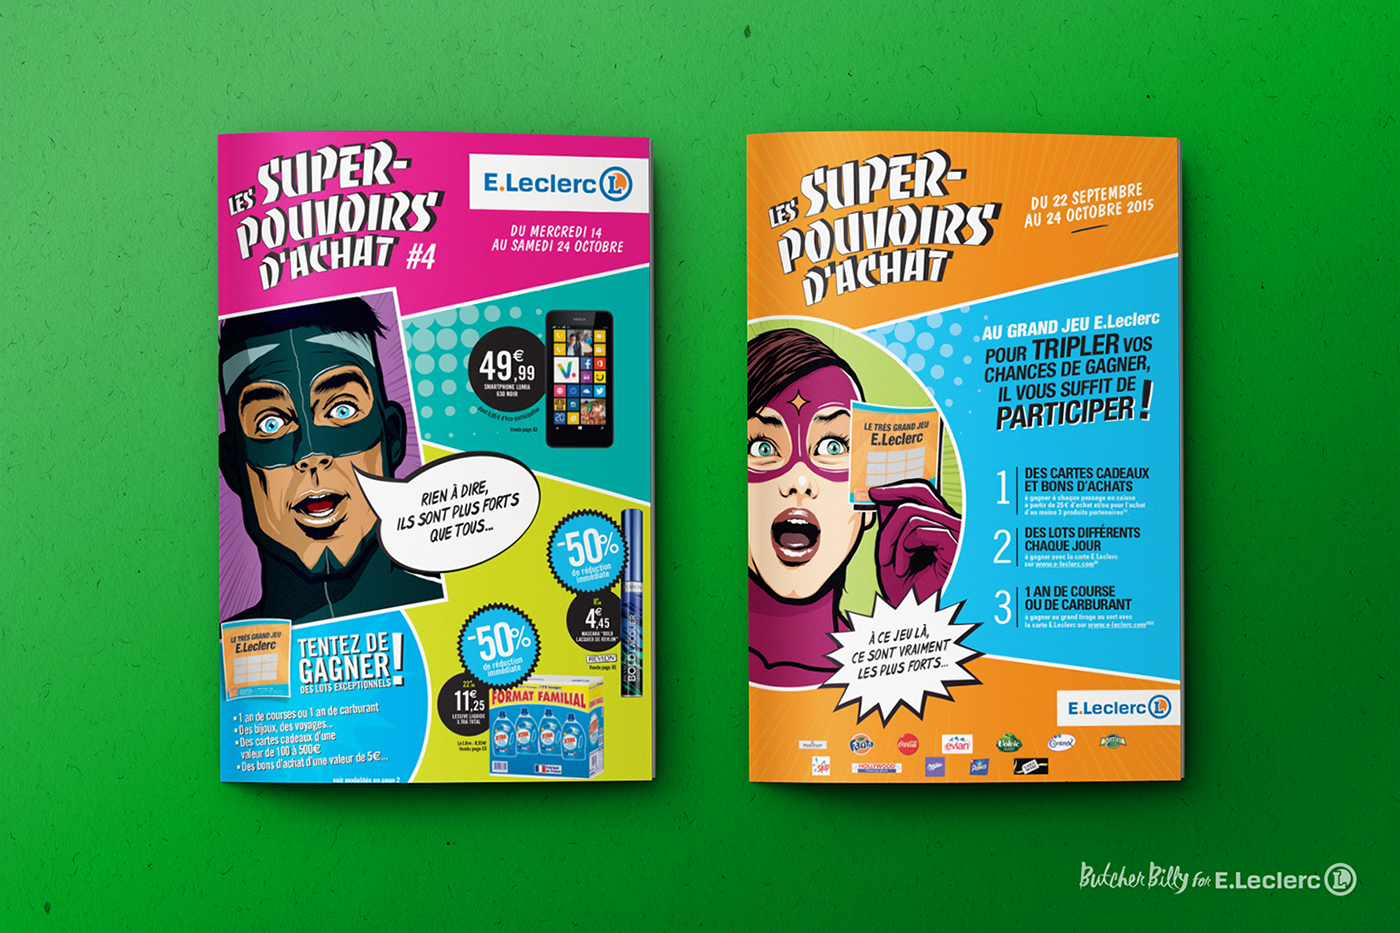 Les Superpouvoirs Dachat Butcher Billy For Eleclerc On